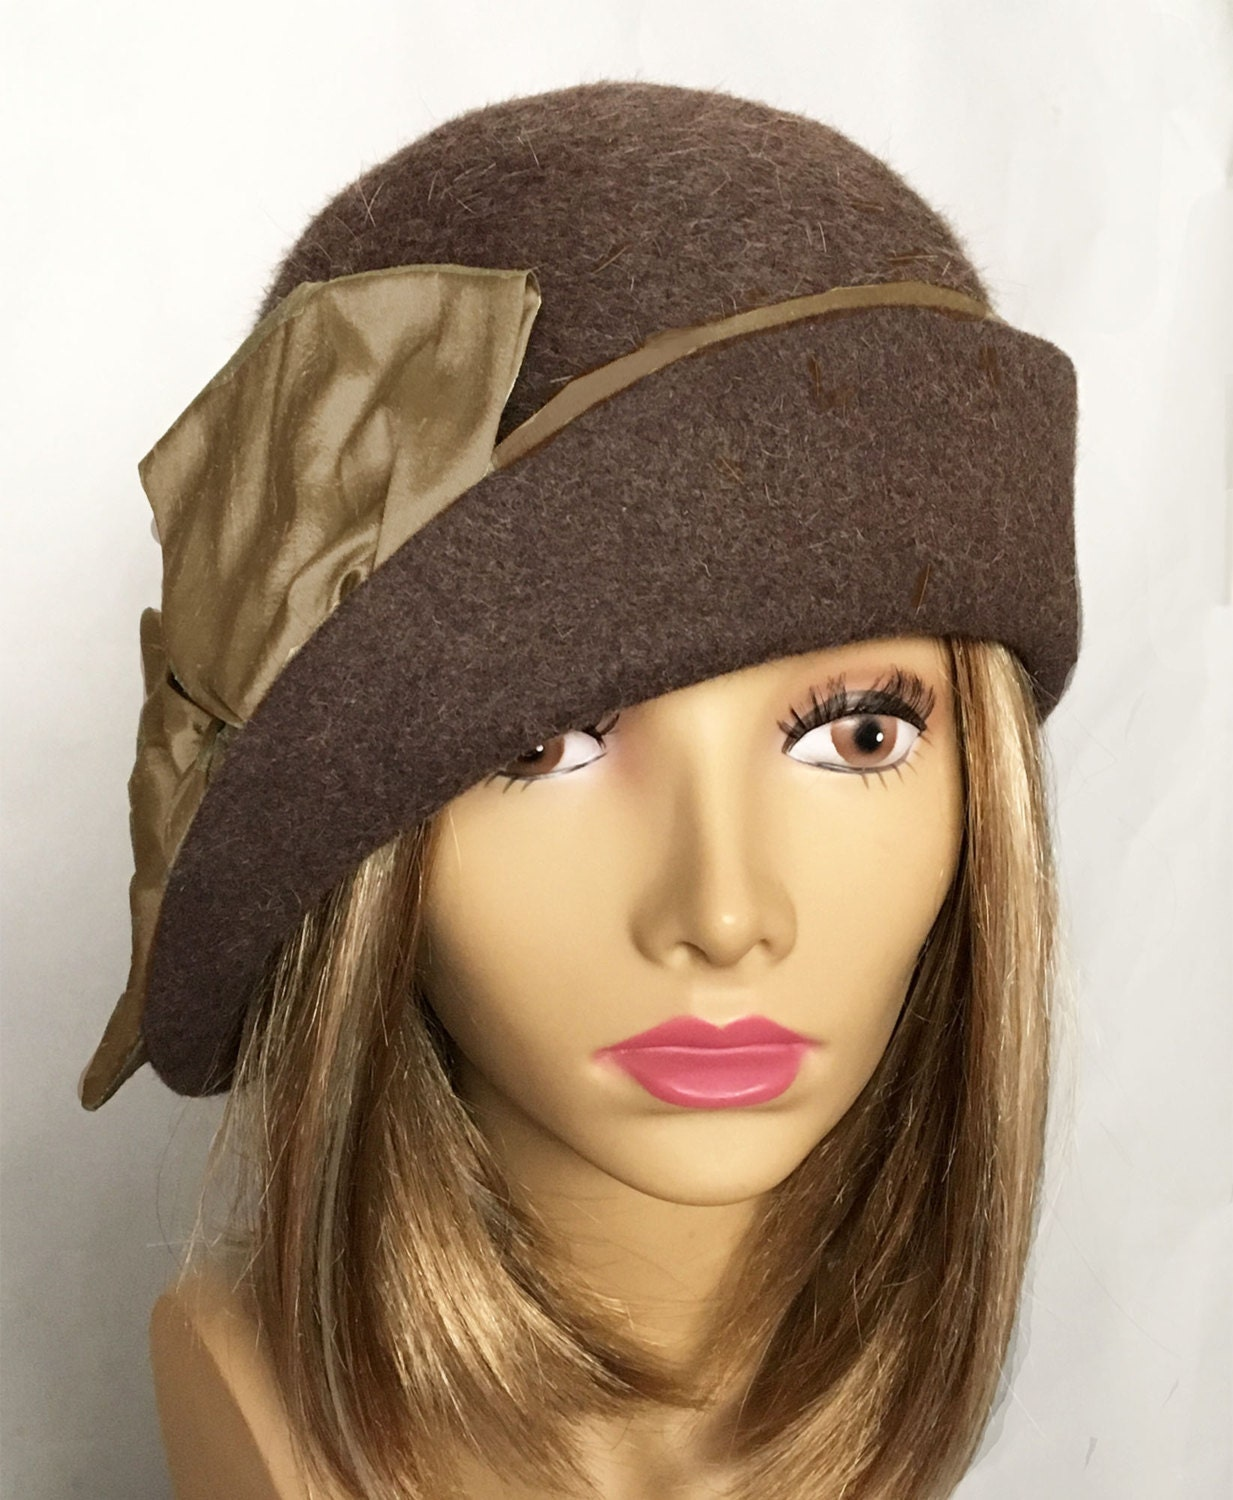 Ashley Fur: Ashley Fur Felt Cloche With Side Drape Color Is Brown